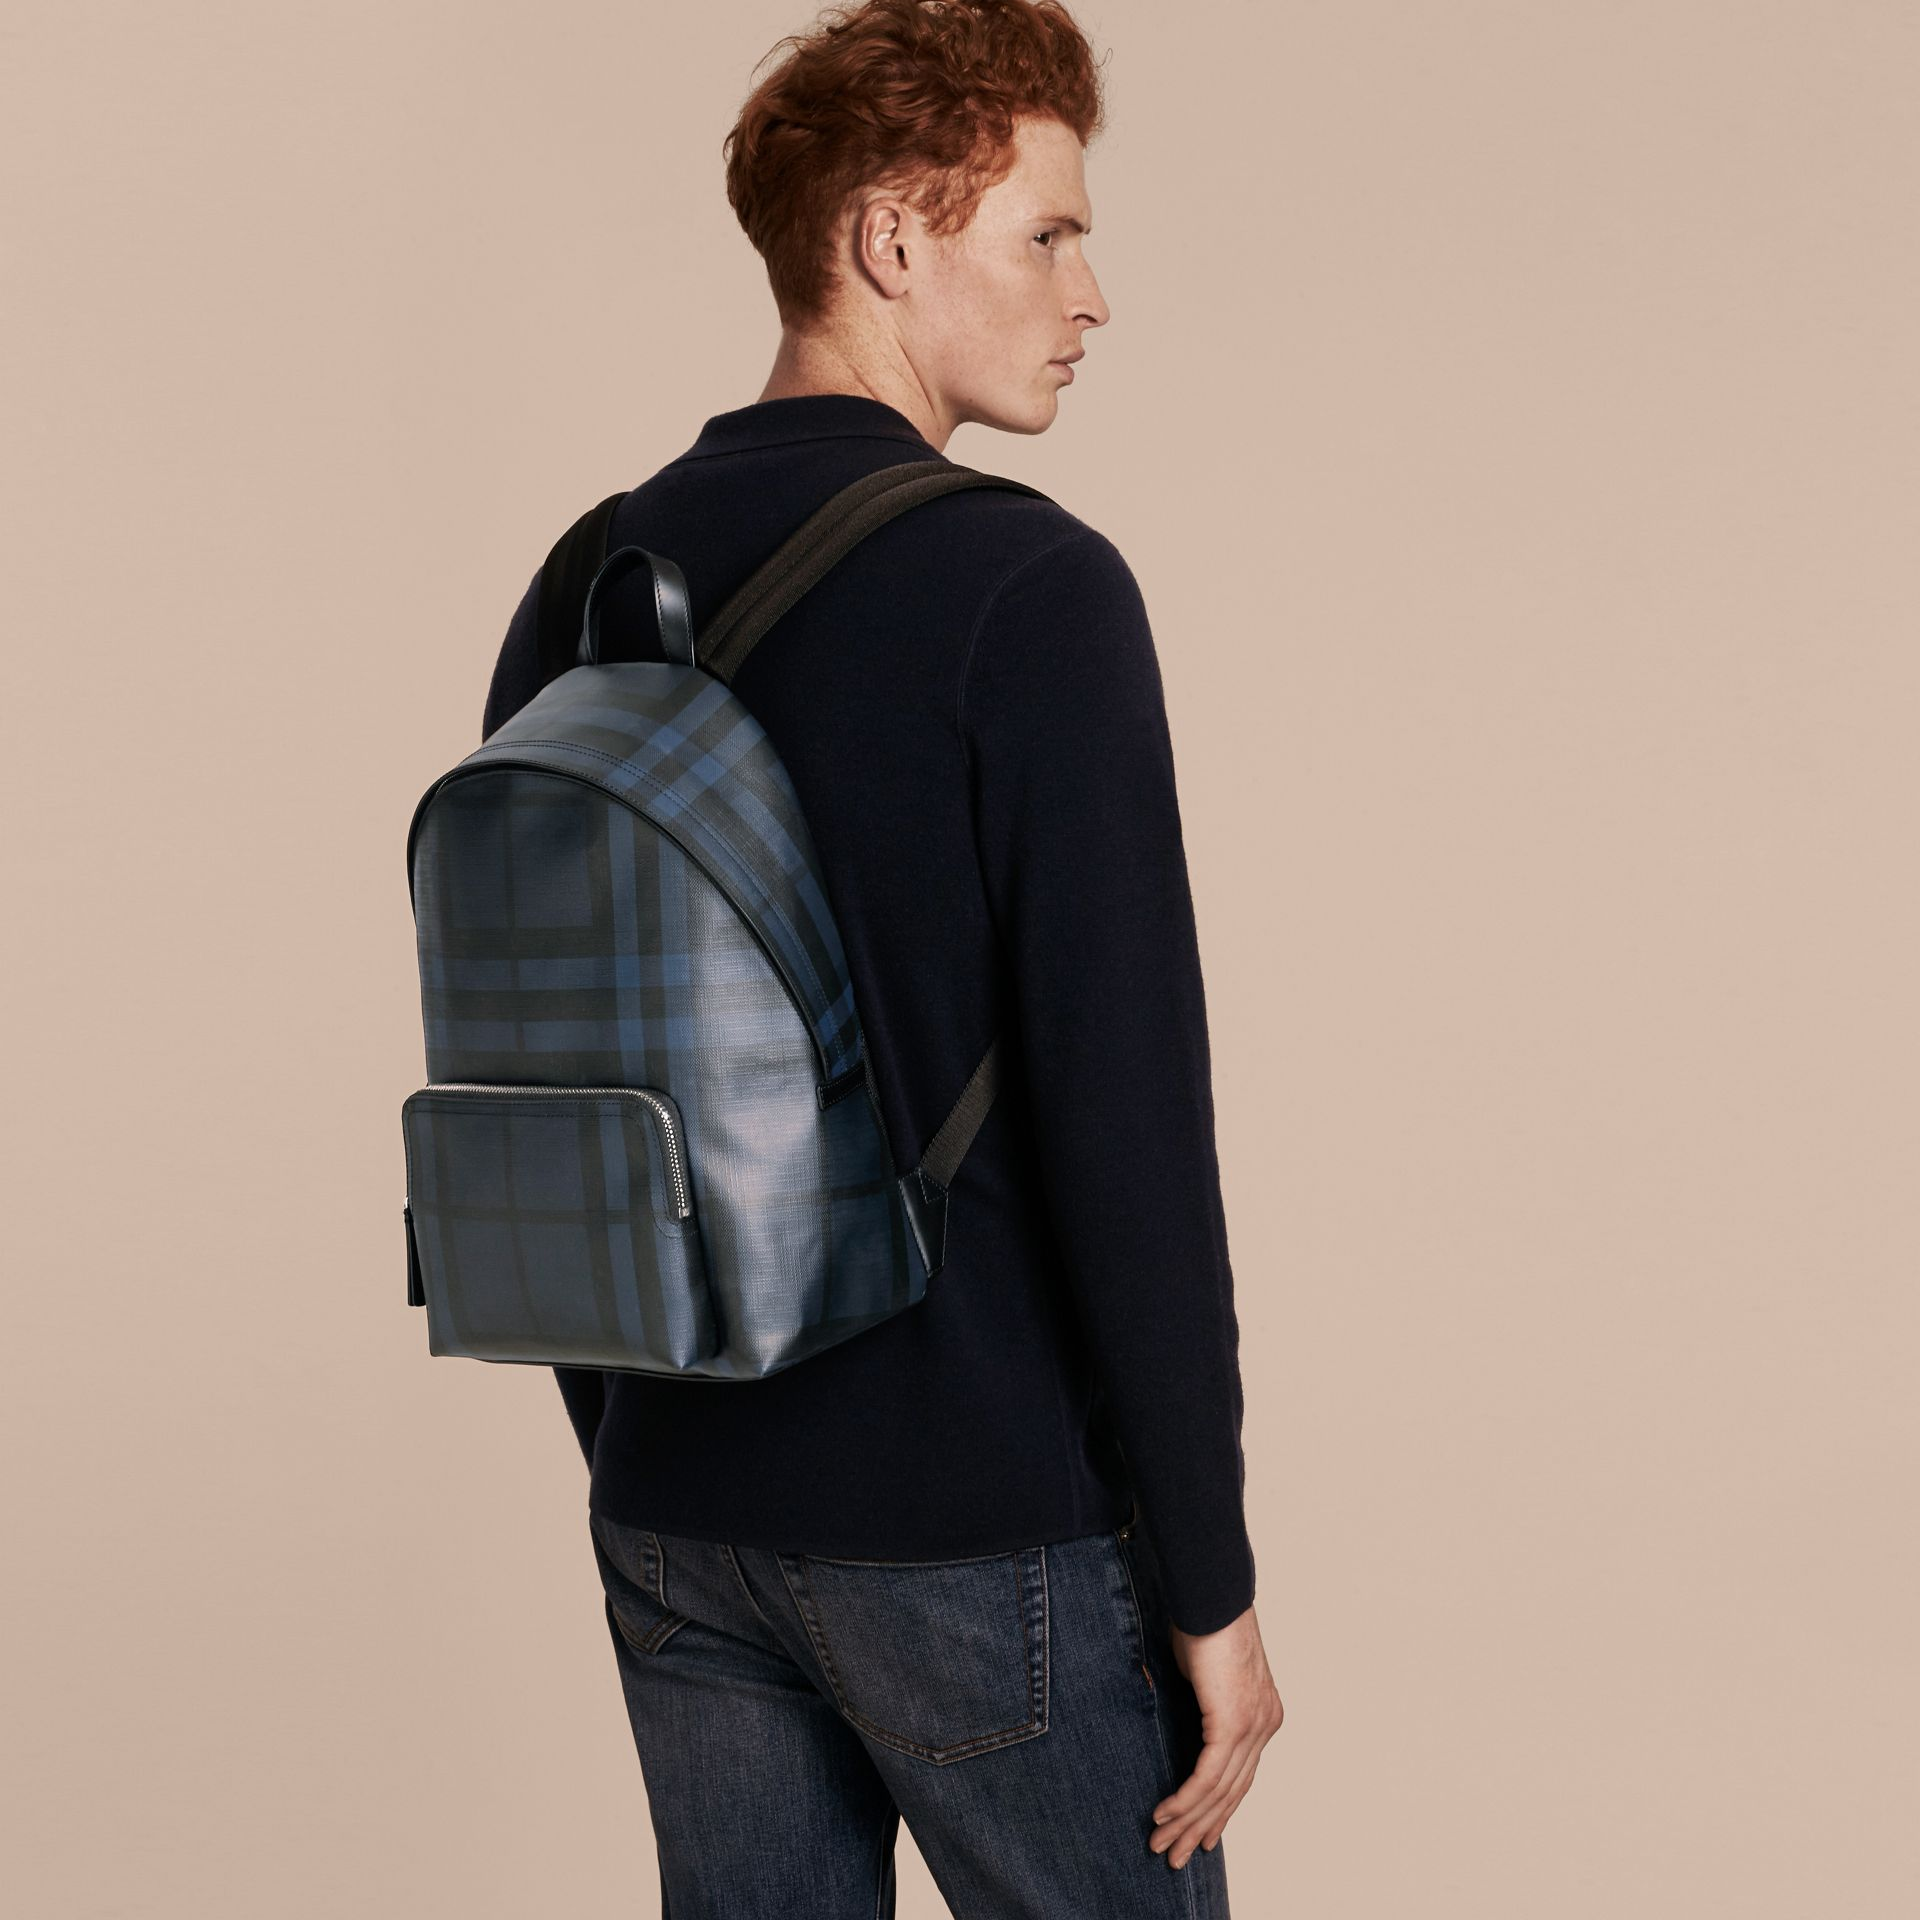 Navy/black Leather Trim London Check Backpack Navy/black - gallery image 3